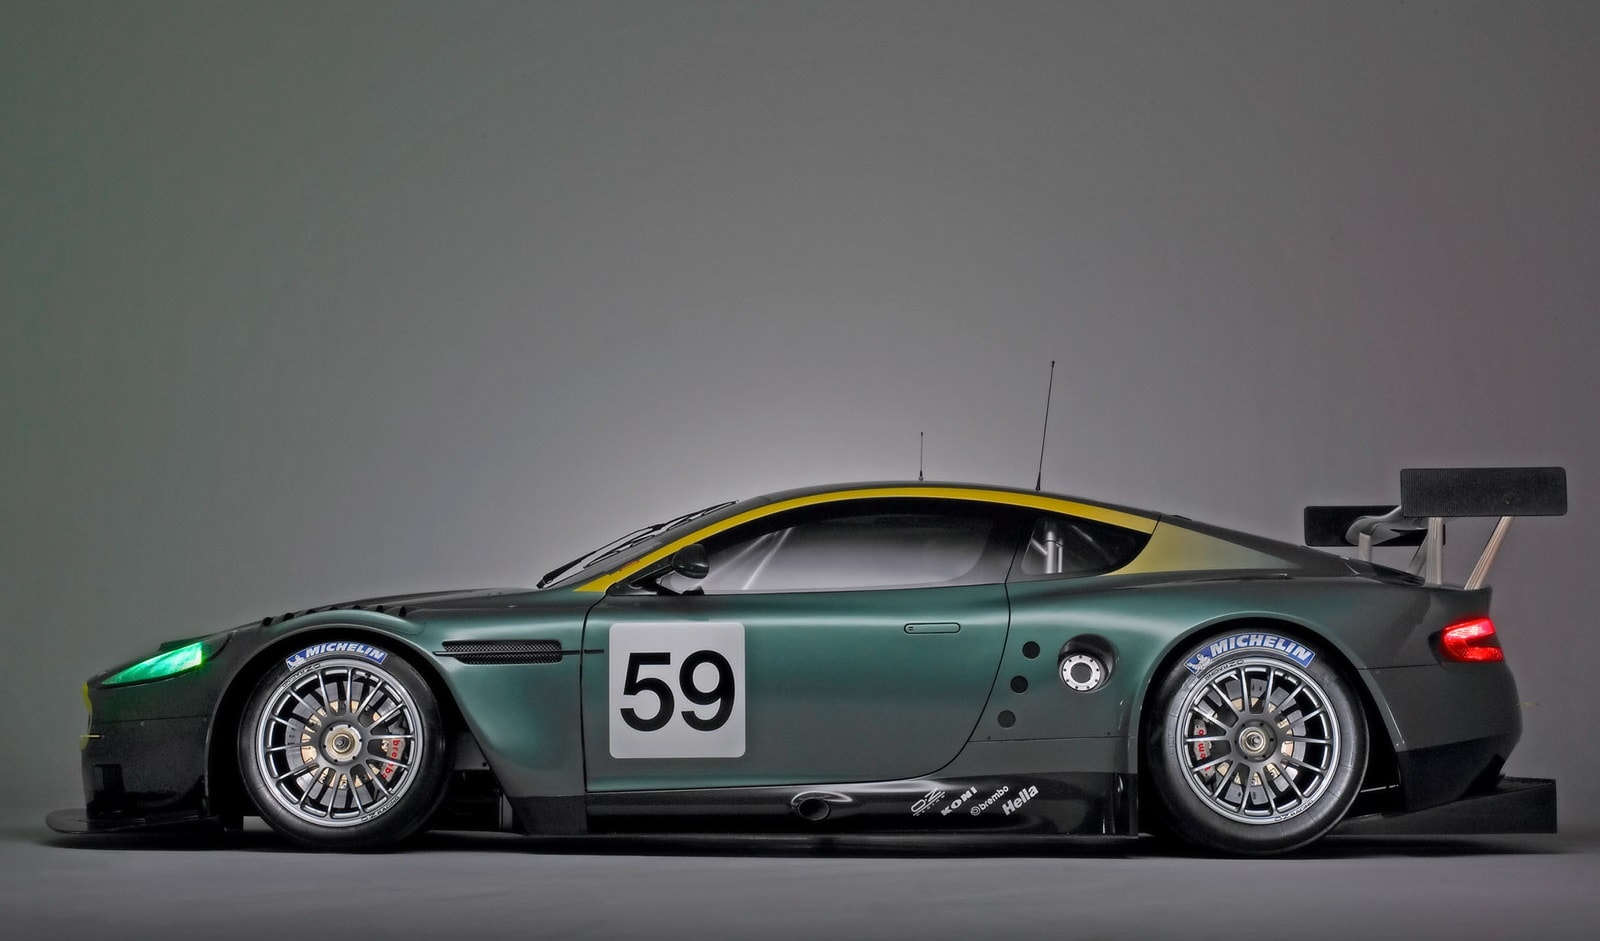 Aston Martin DBR9 HQ wallpapers